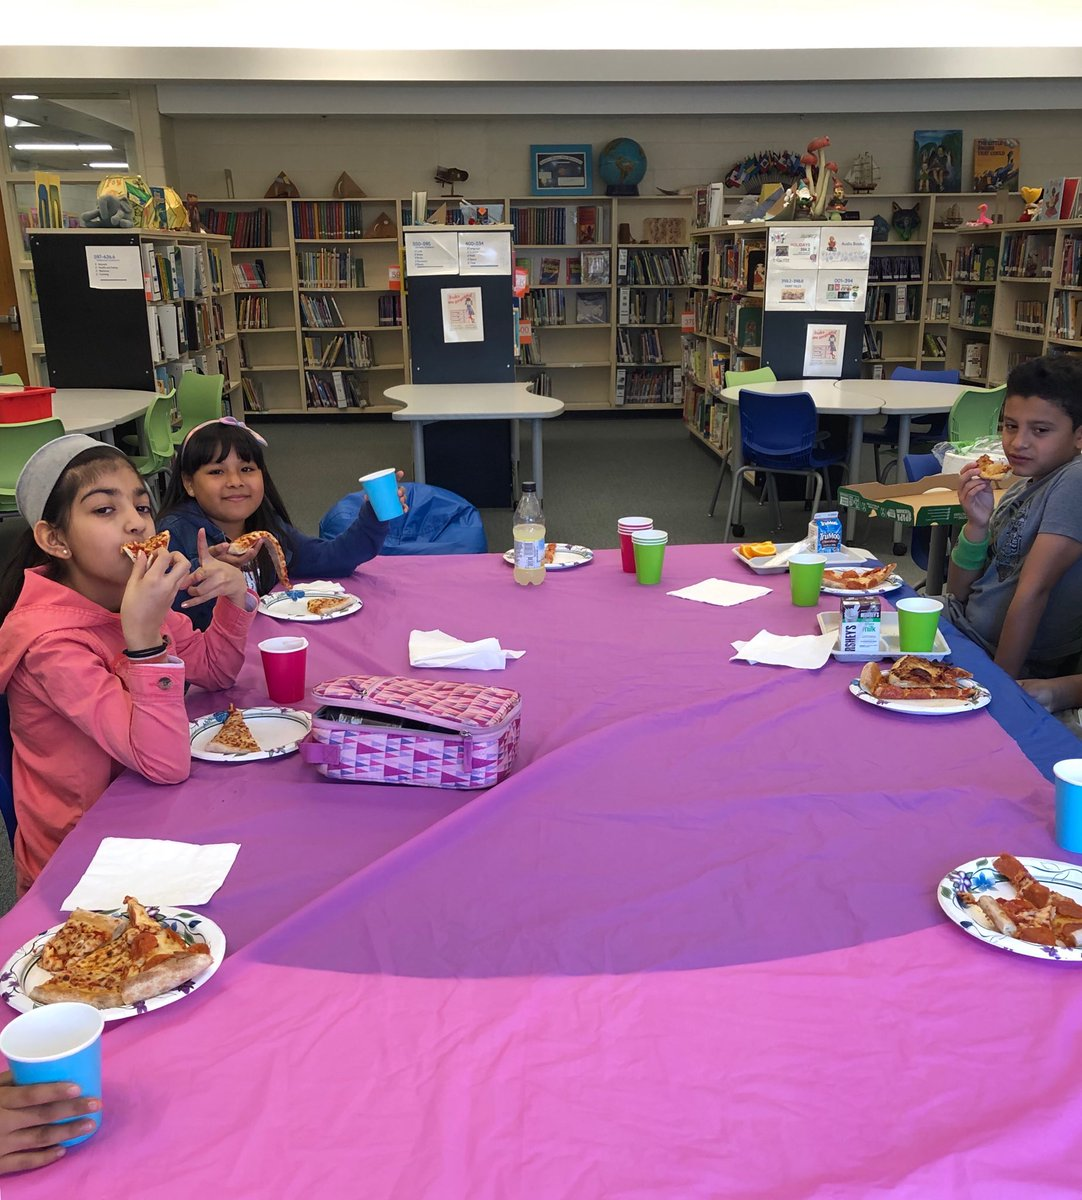 Celebrating the end of a successful book club: these <a target='_blank' href='http://twitter.com/BarcroftEagles'>@BarcroftEagles</a> read &amp; thought deeply about The BFG &amp; The One and Only Ivan. Great dialogues, Eagles. <a target='_blank' href='http://twitter.com/missspohn'>@missspohn</a> <a target='_blank' href='http://twitter.com/kiakinsler'>@kiakinsler</a> <a target='_blank' href='http://twitter.com/APSLibrarians'>@APSLibrarians</a>  <a target='_blank' href='http://twitter.com/GabyRivasAPS'>@GabyRivasAPS</a> <a target='_blank' href='http://twitter.com/APS_ELA_Elem'>@APS_ELA_Elem</a> <a target='_blank' href='https://t.co/3uQjYp0tZW'>https://t.co/3uQjYp0tZW</a>